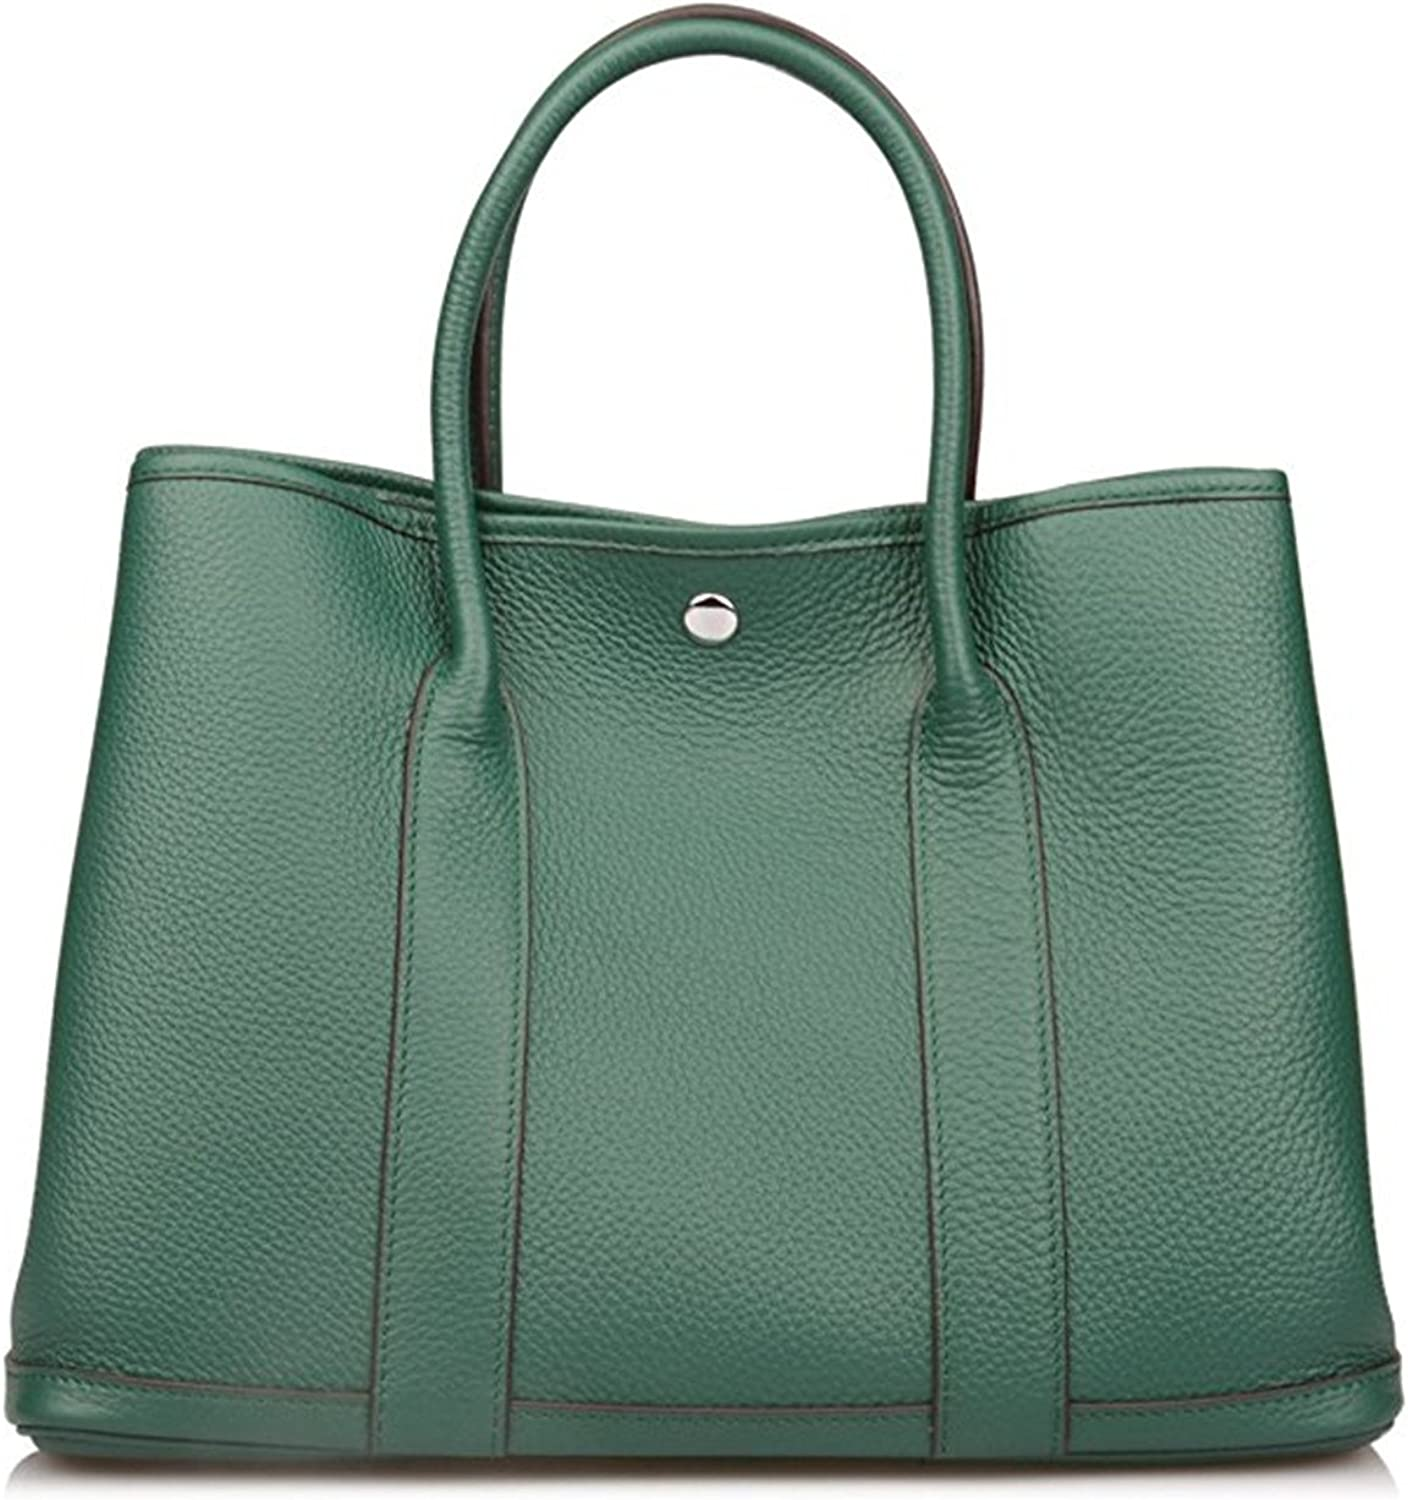 Genuine Leather Tote Bag Top Handle Handbags Emerald